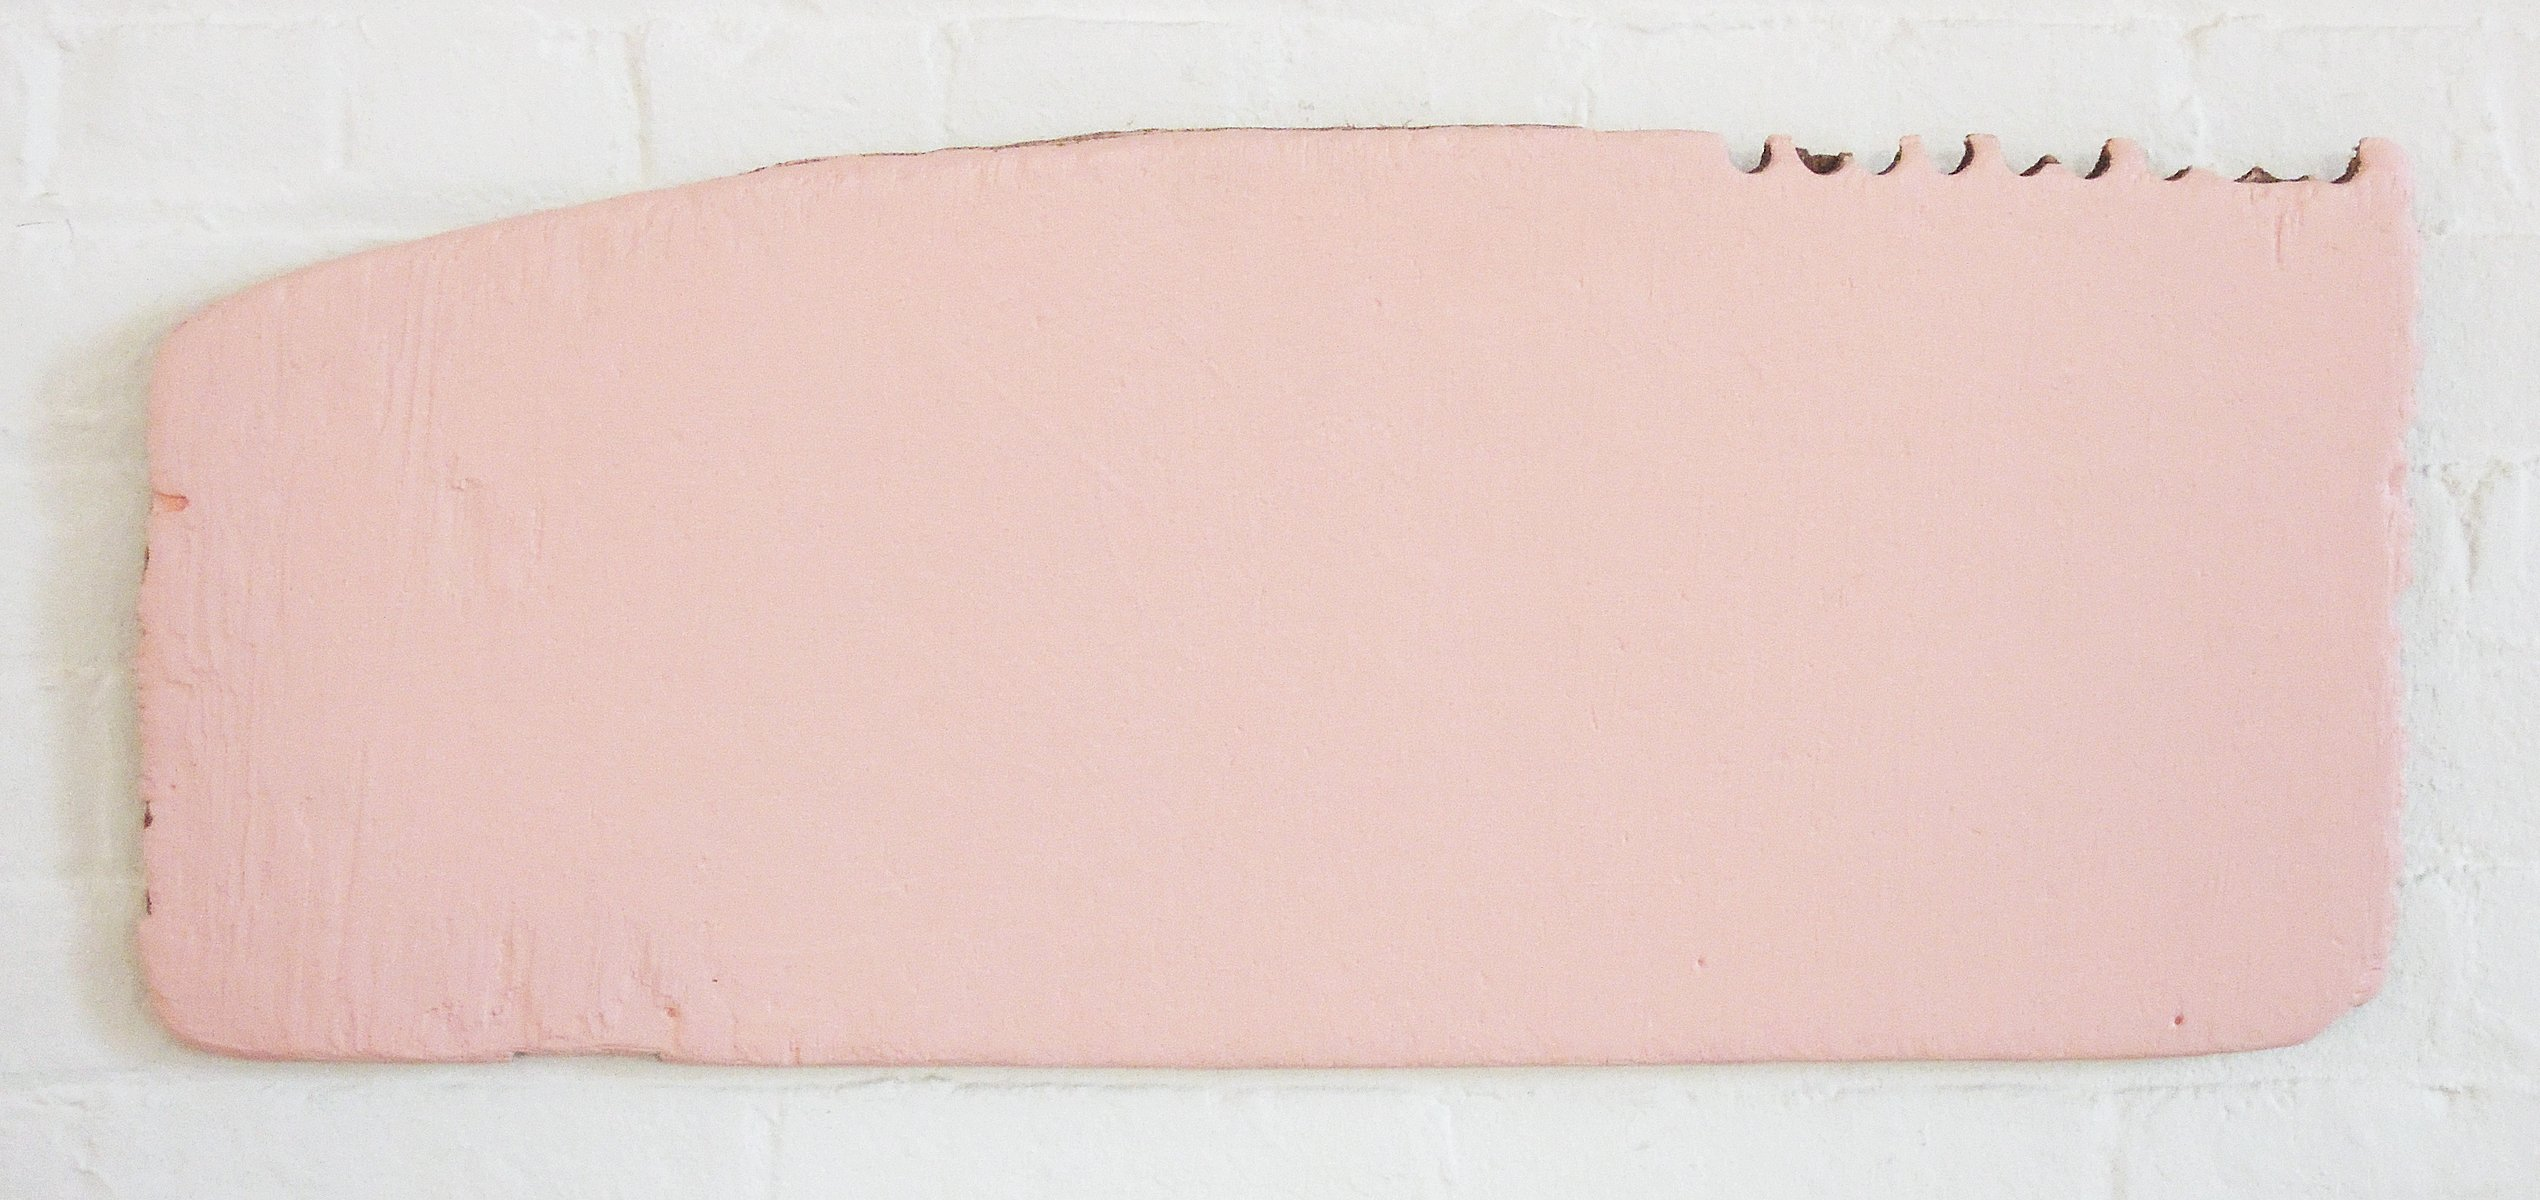 An irregularly shaped piece of plywood completely covered in pink paint.